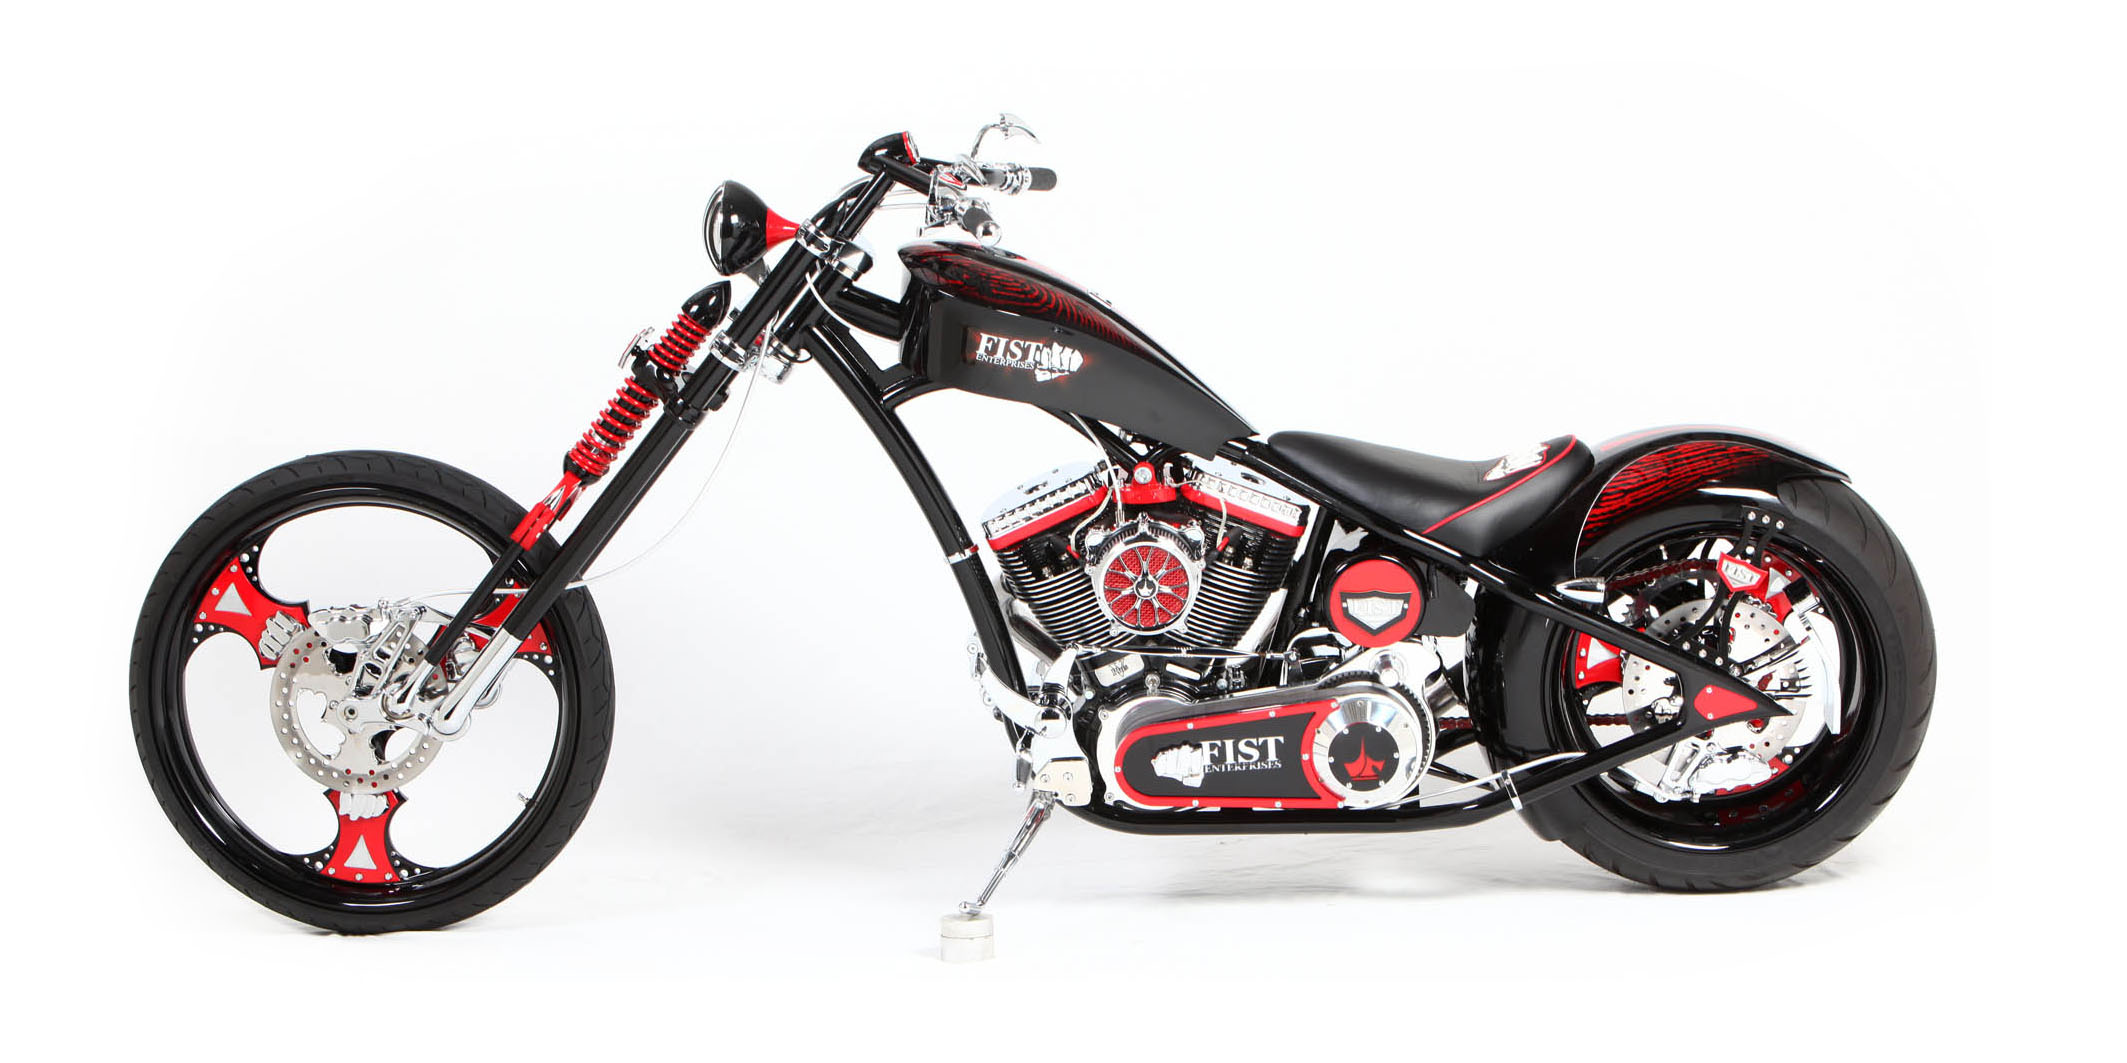 paul-jr-designs-fist-bike-041